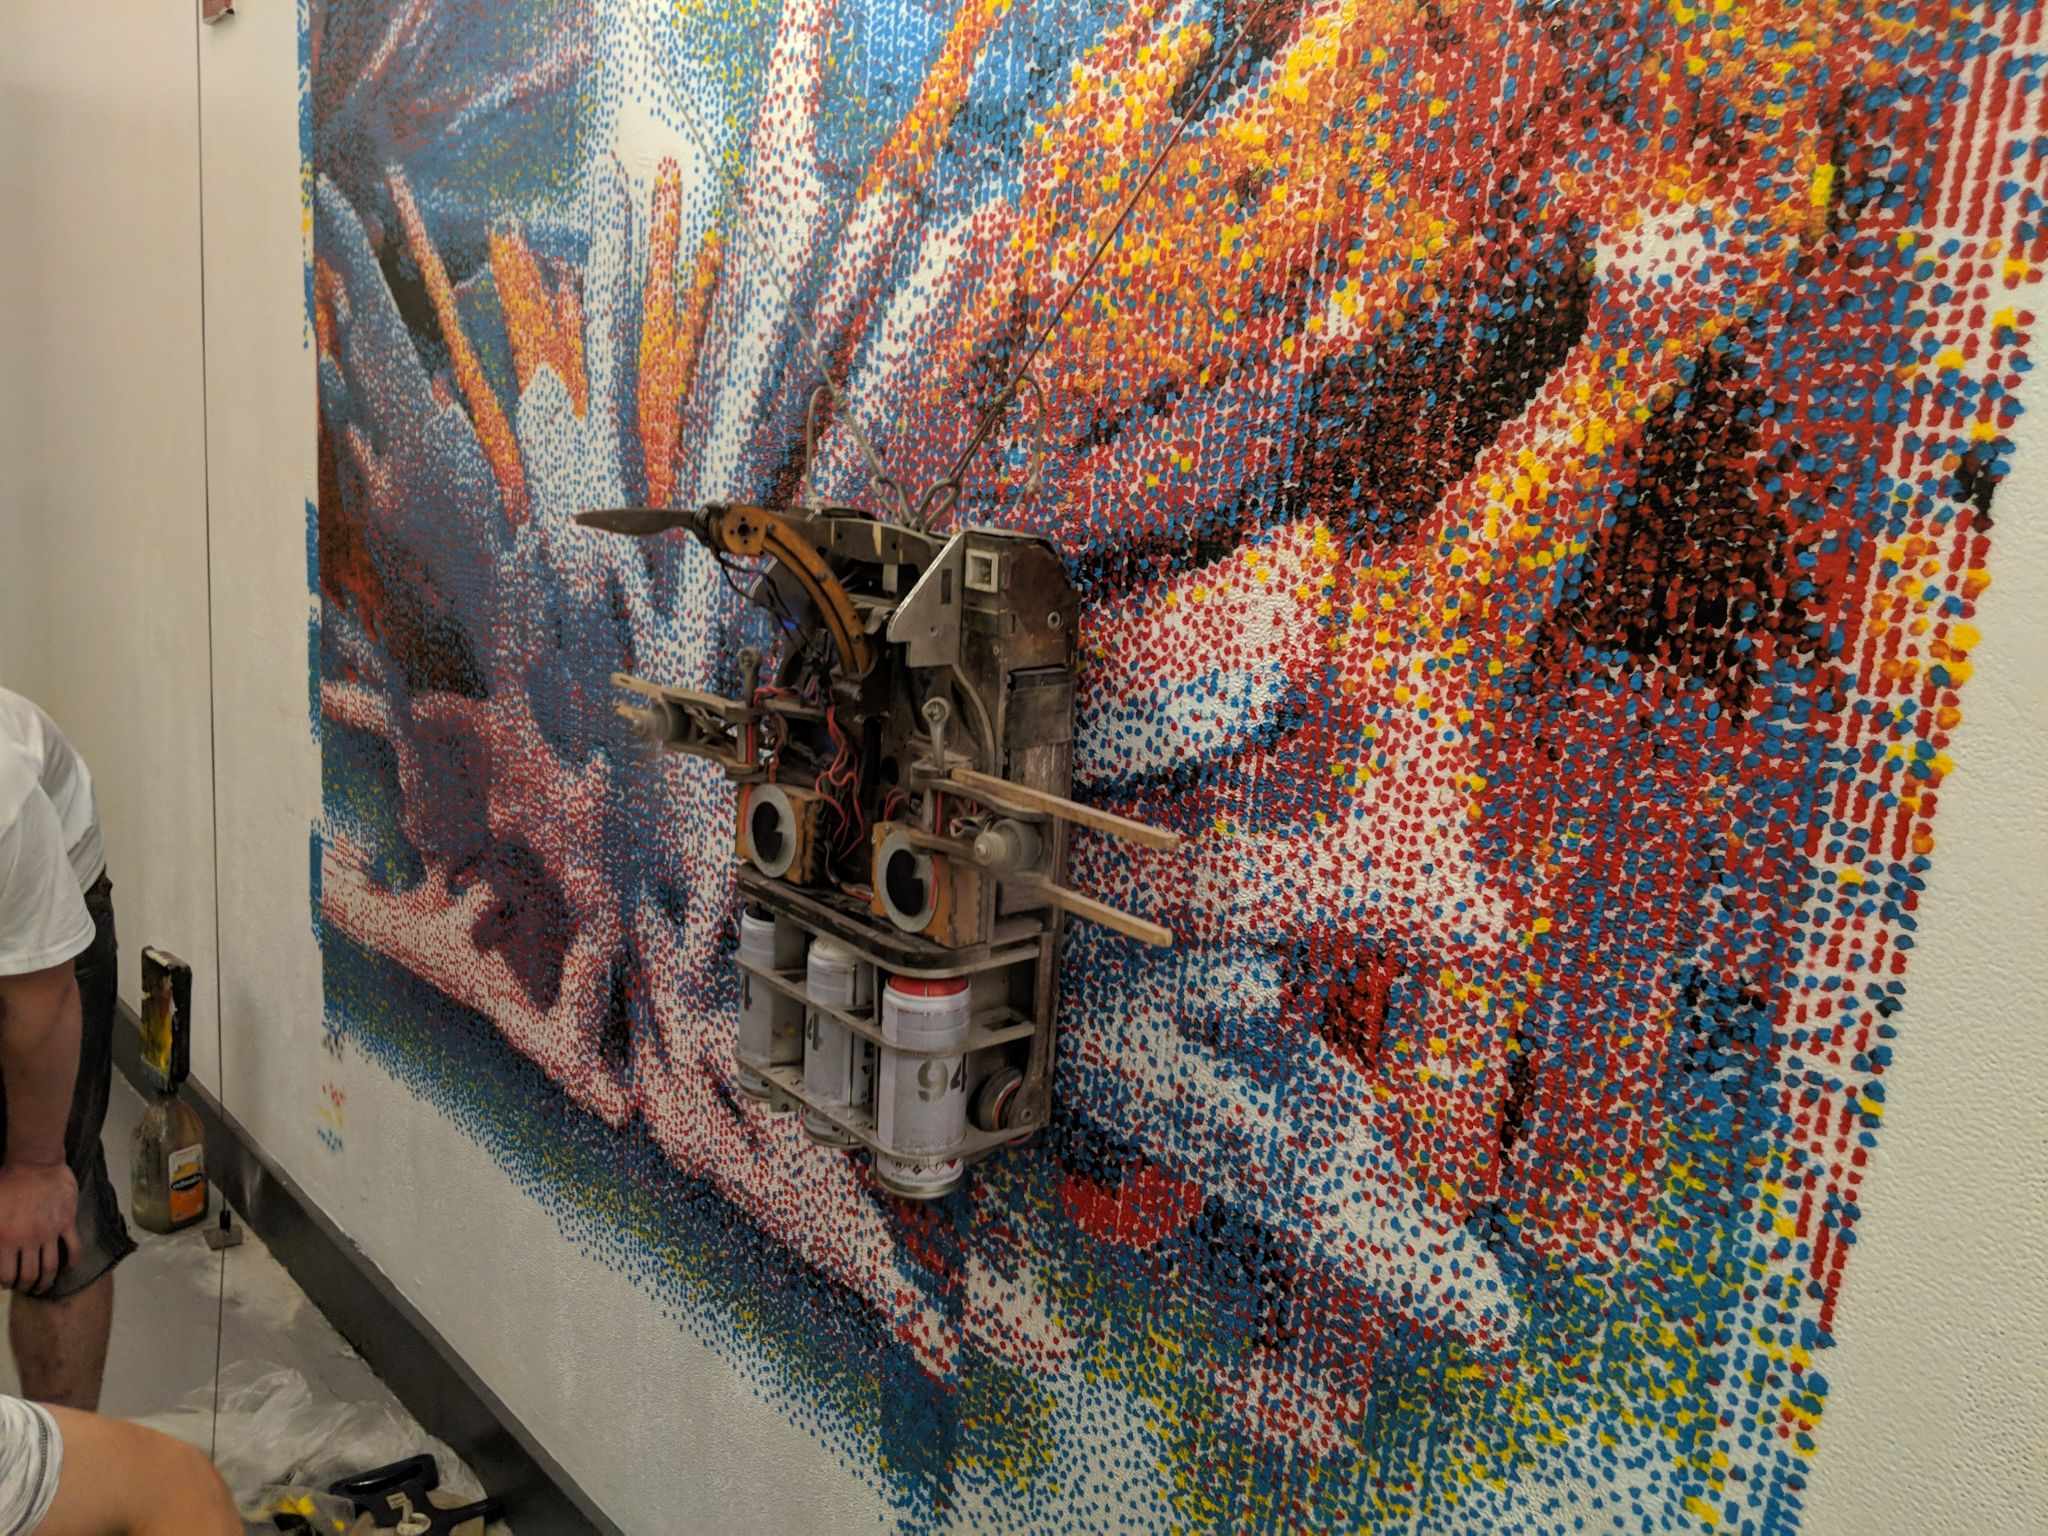 Bay area company invents robot that paints giant murals on the sides of buildings sfgate